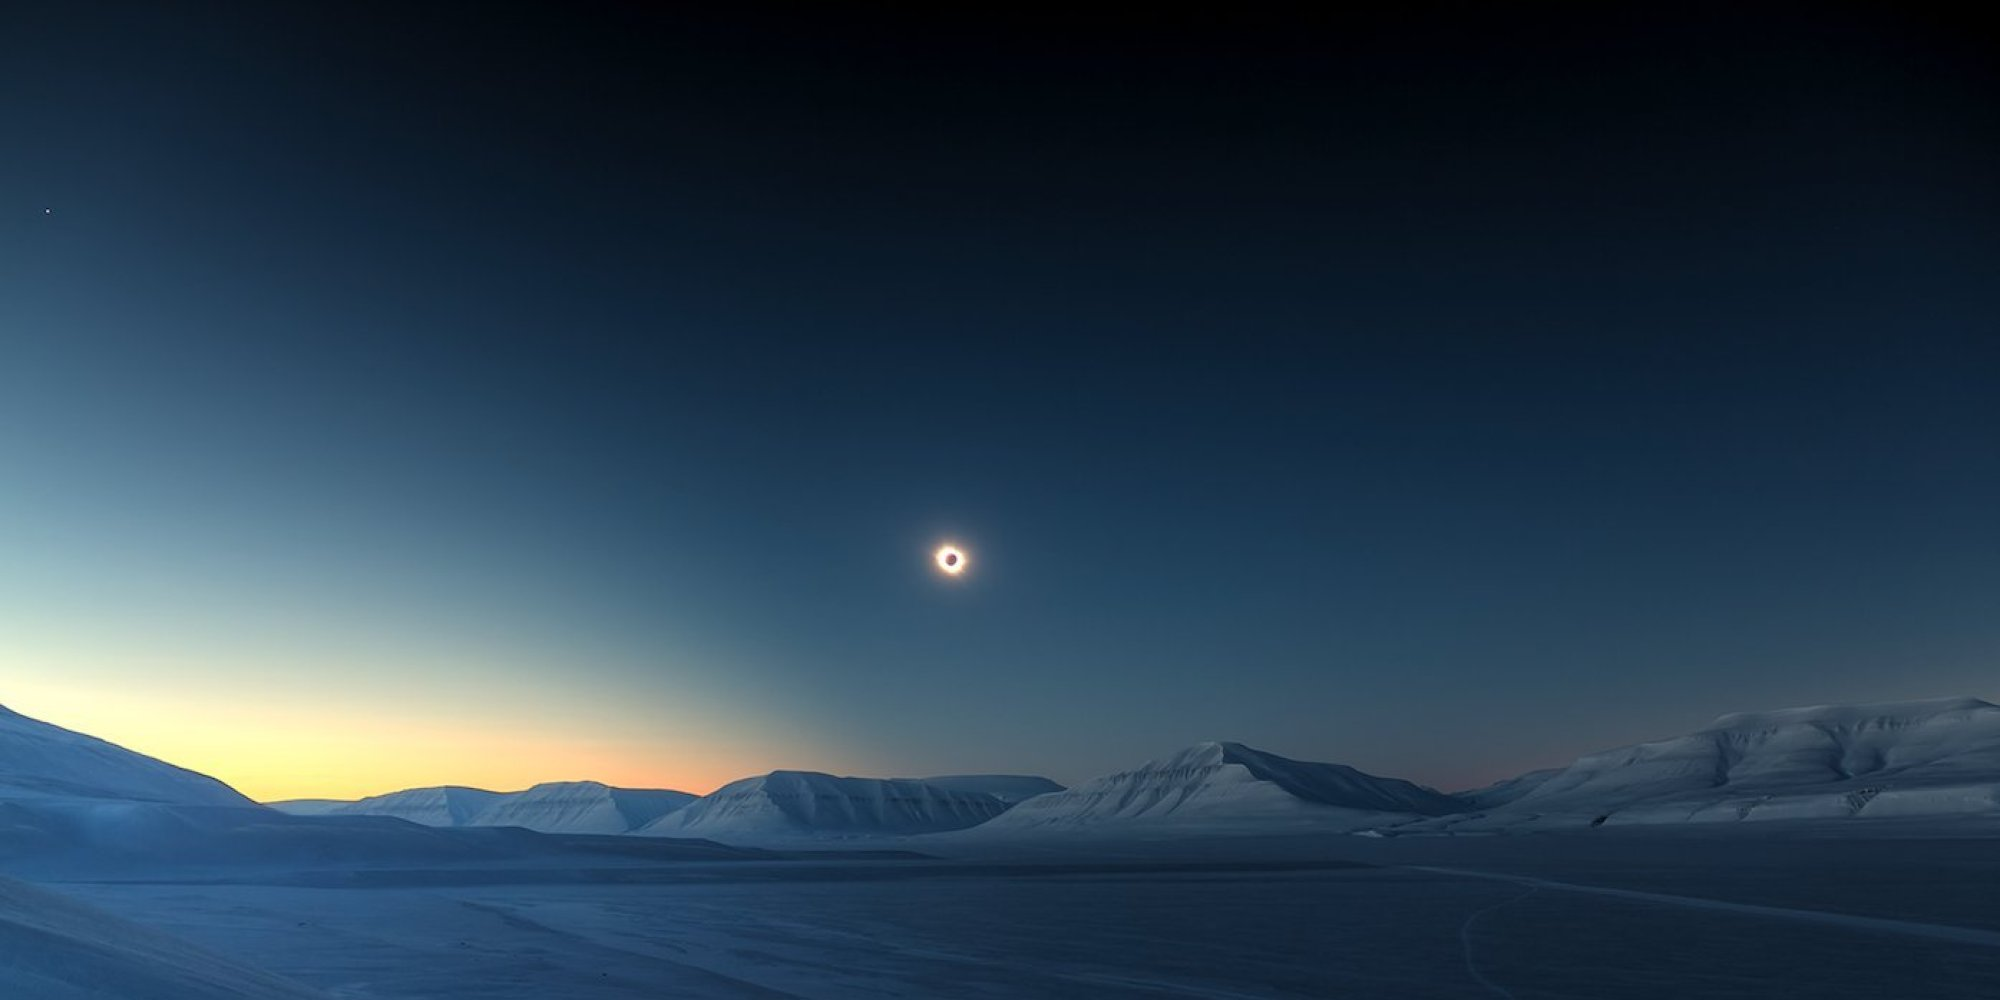 best astronomy photos of the year - photo #11